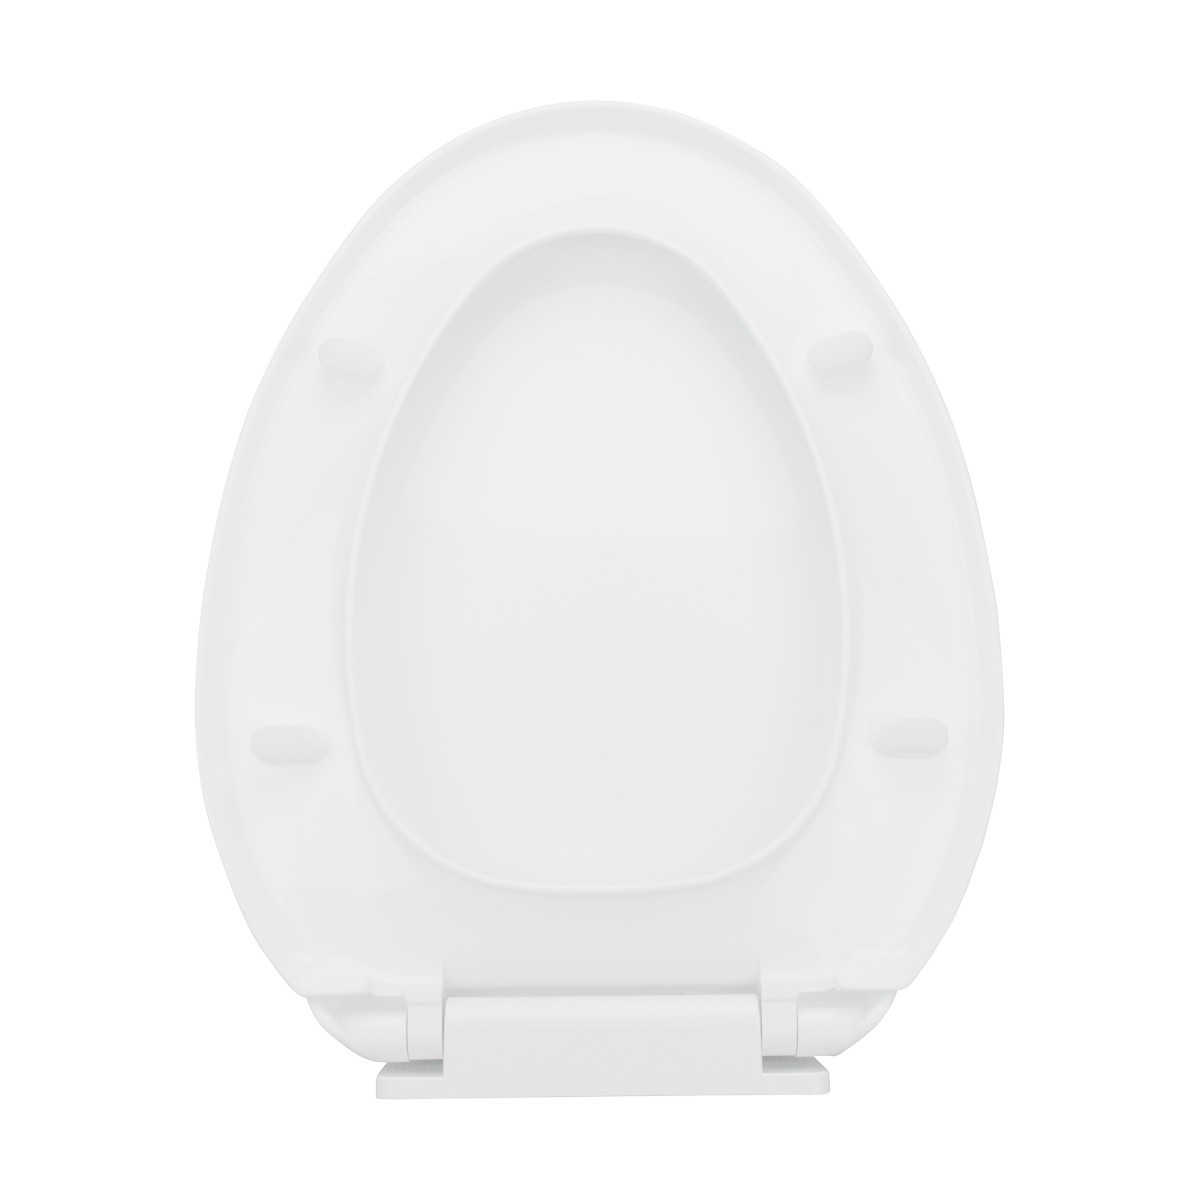 No Slam Slow Close Elongated Toilet Seat in White Renovators Supply White Toilet Seat Toilet Seat Elongated Slow Close Toilet Seat